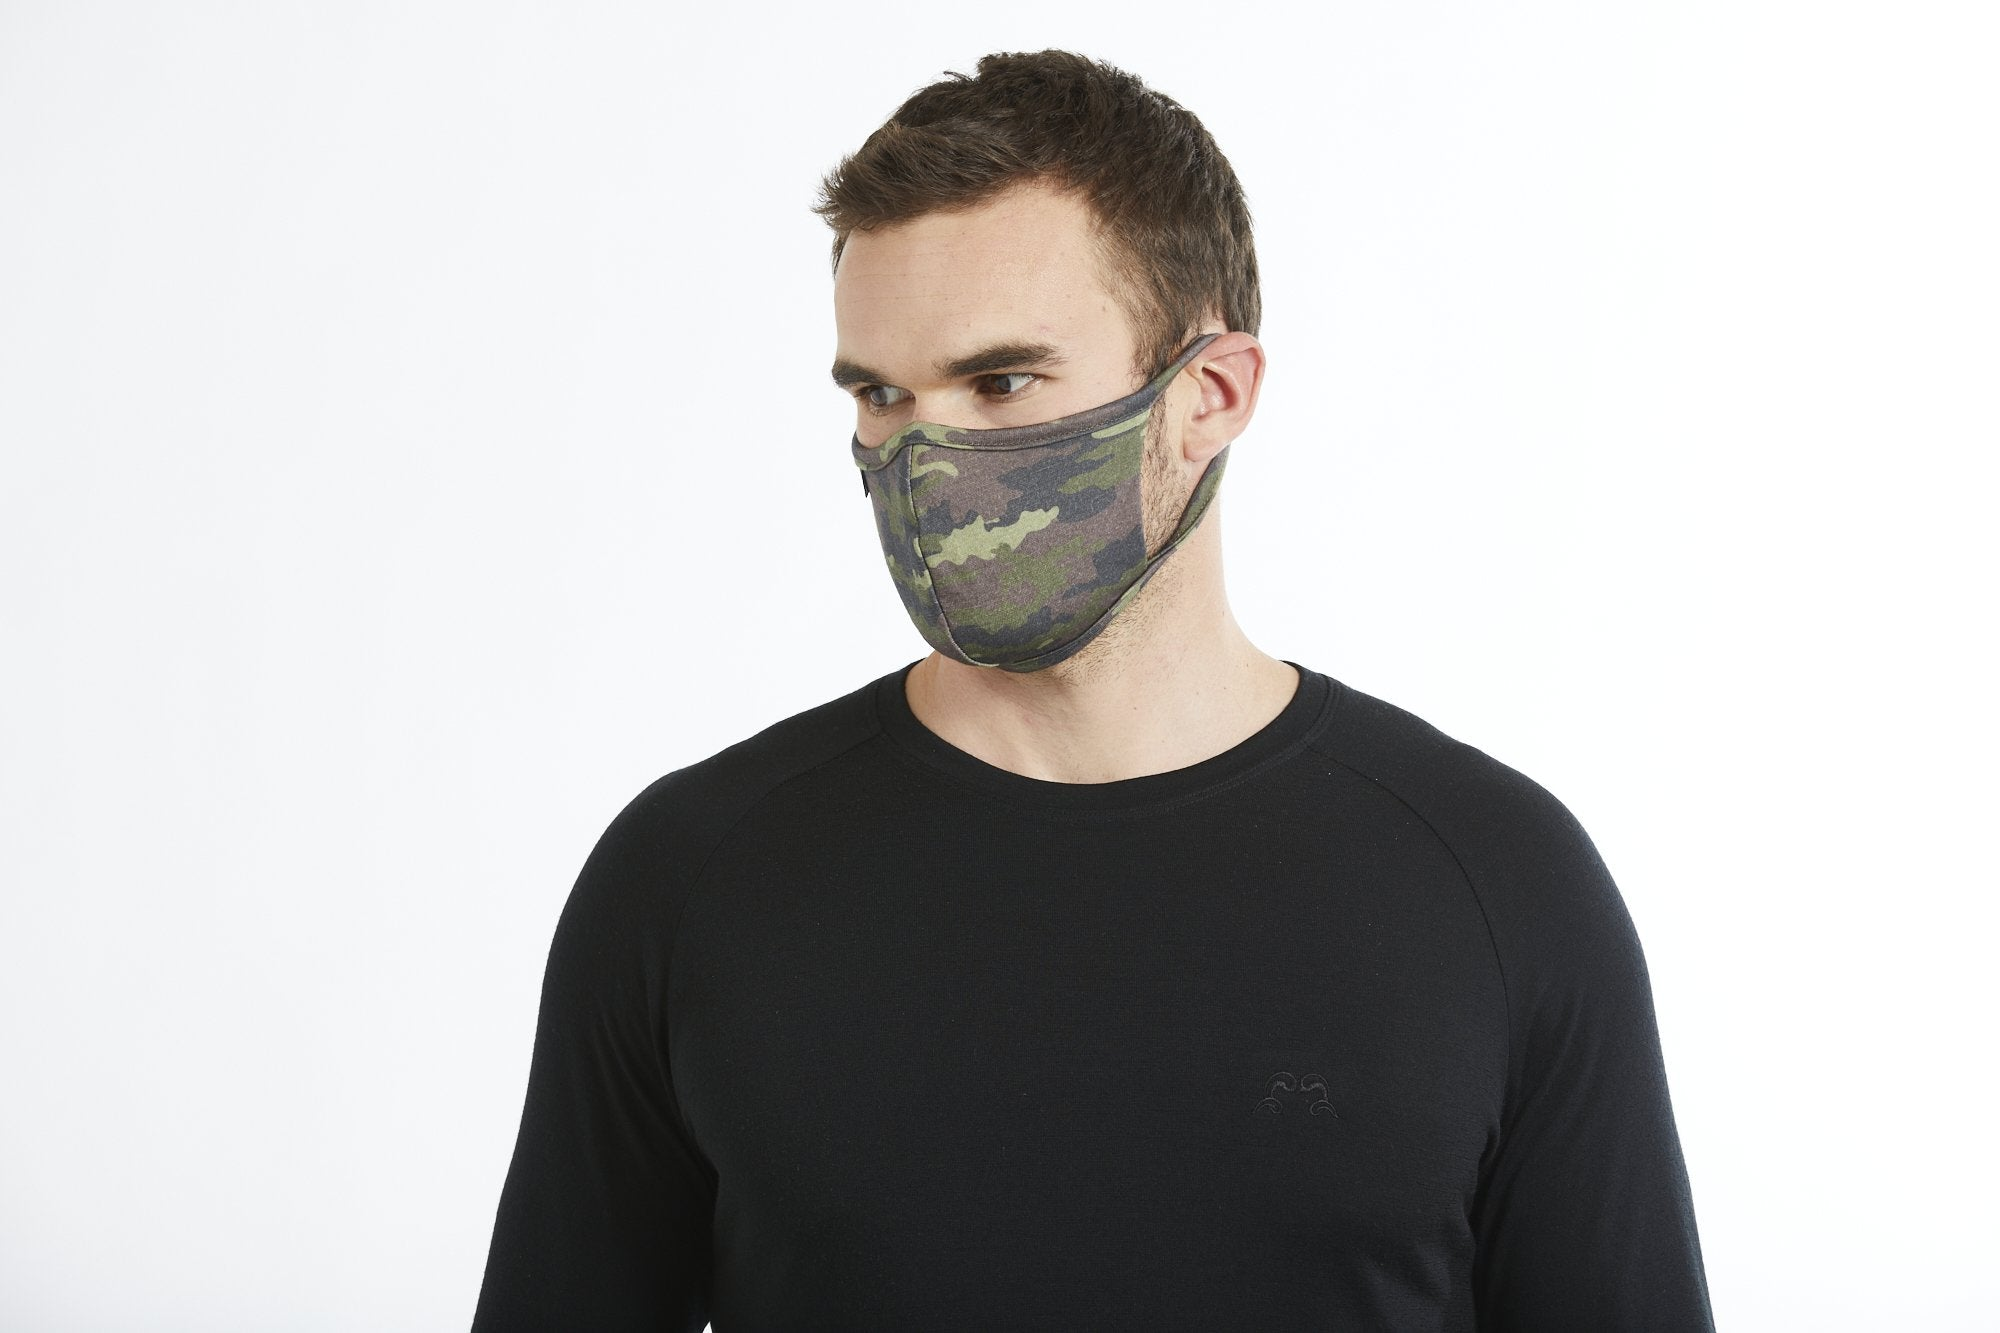 True Fleece Merino Wool Soft breathable face mask